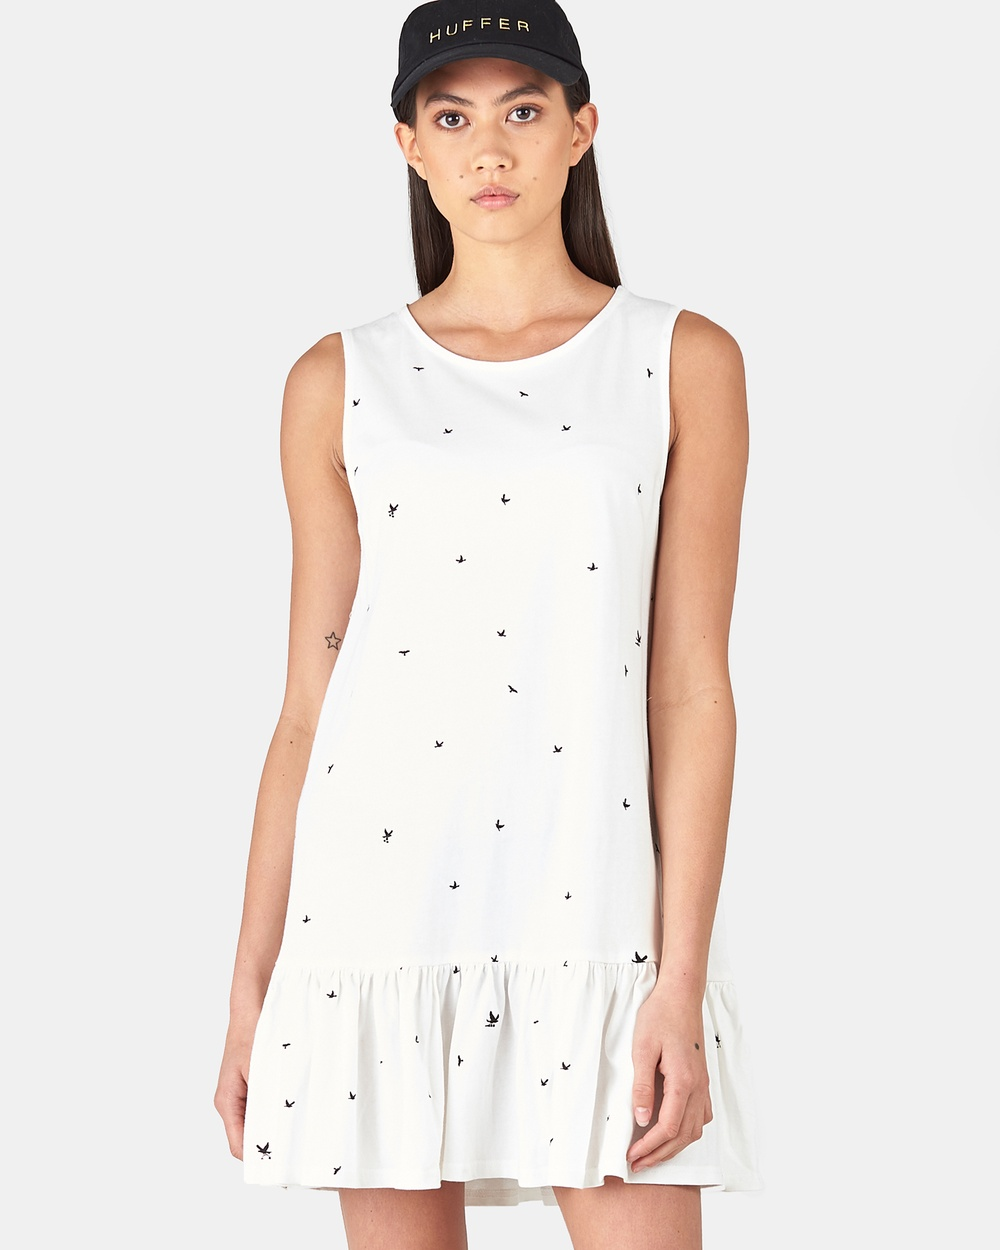 Huffer ISLE OF PINES PORT DRESS Dresses WHITE ISLE OF PINES PORT DRESS